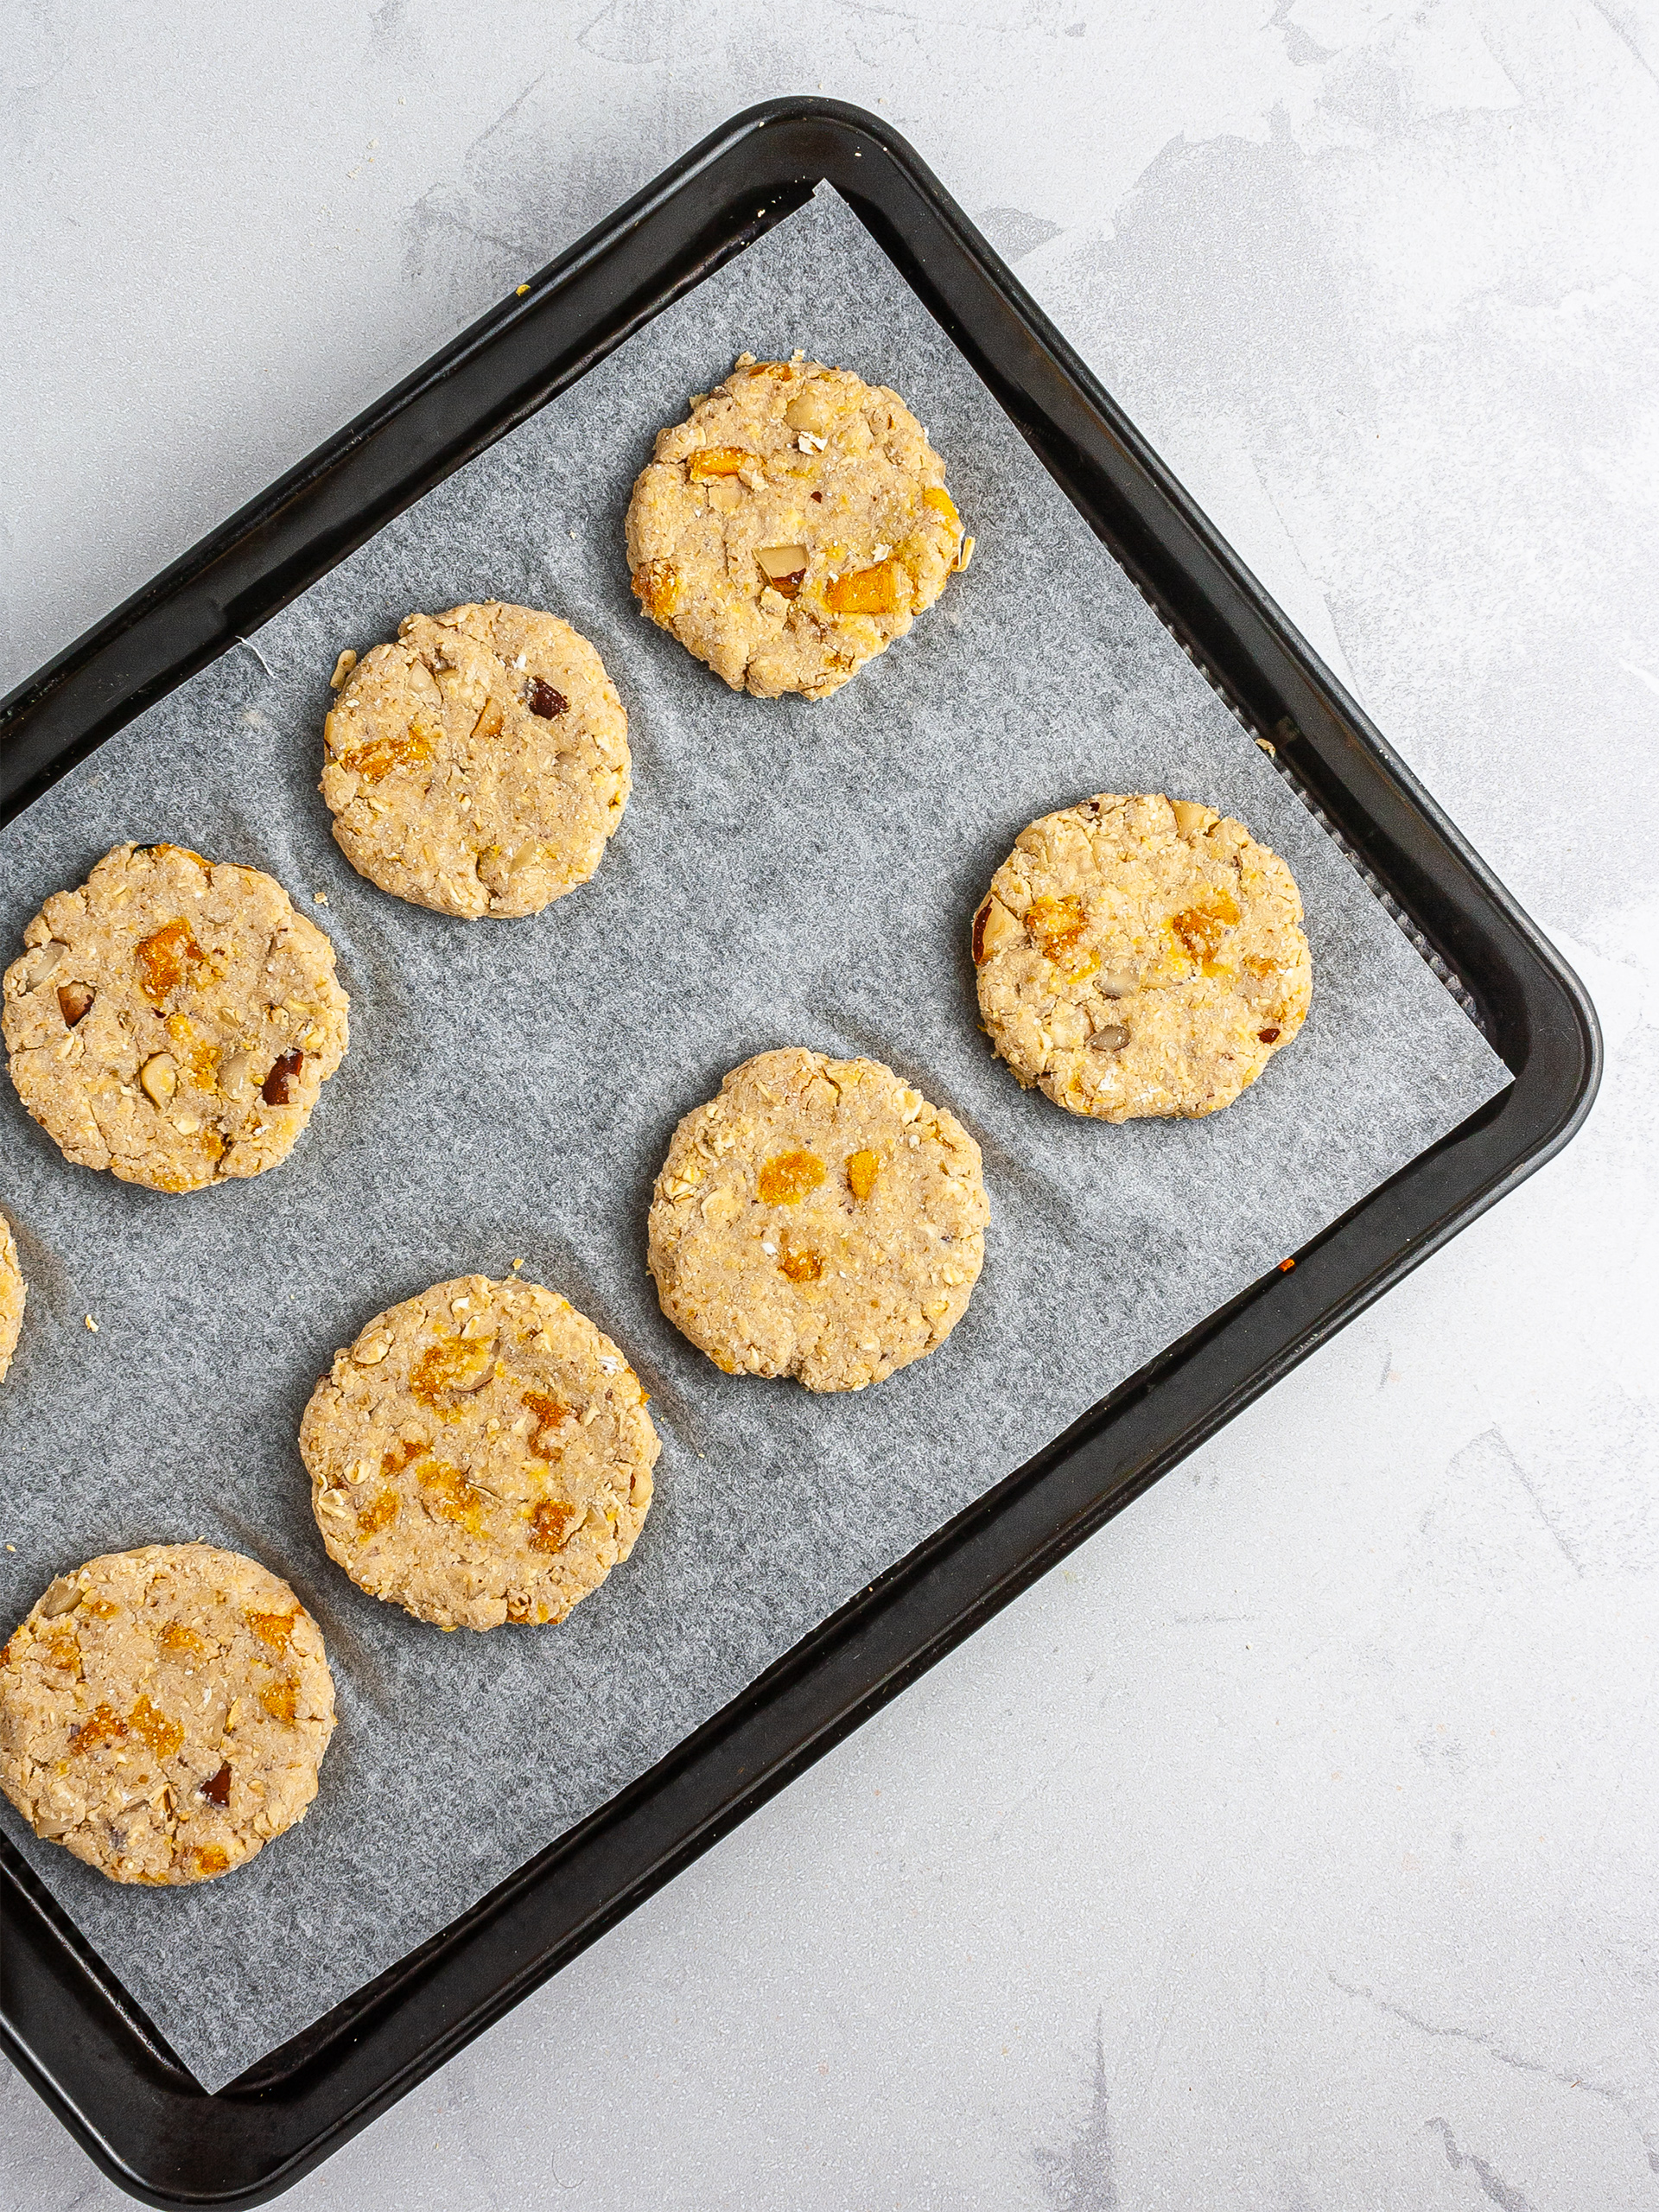 Dough shaped into cookies over a baking tray.